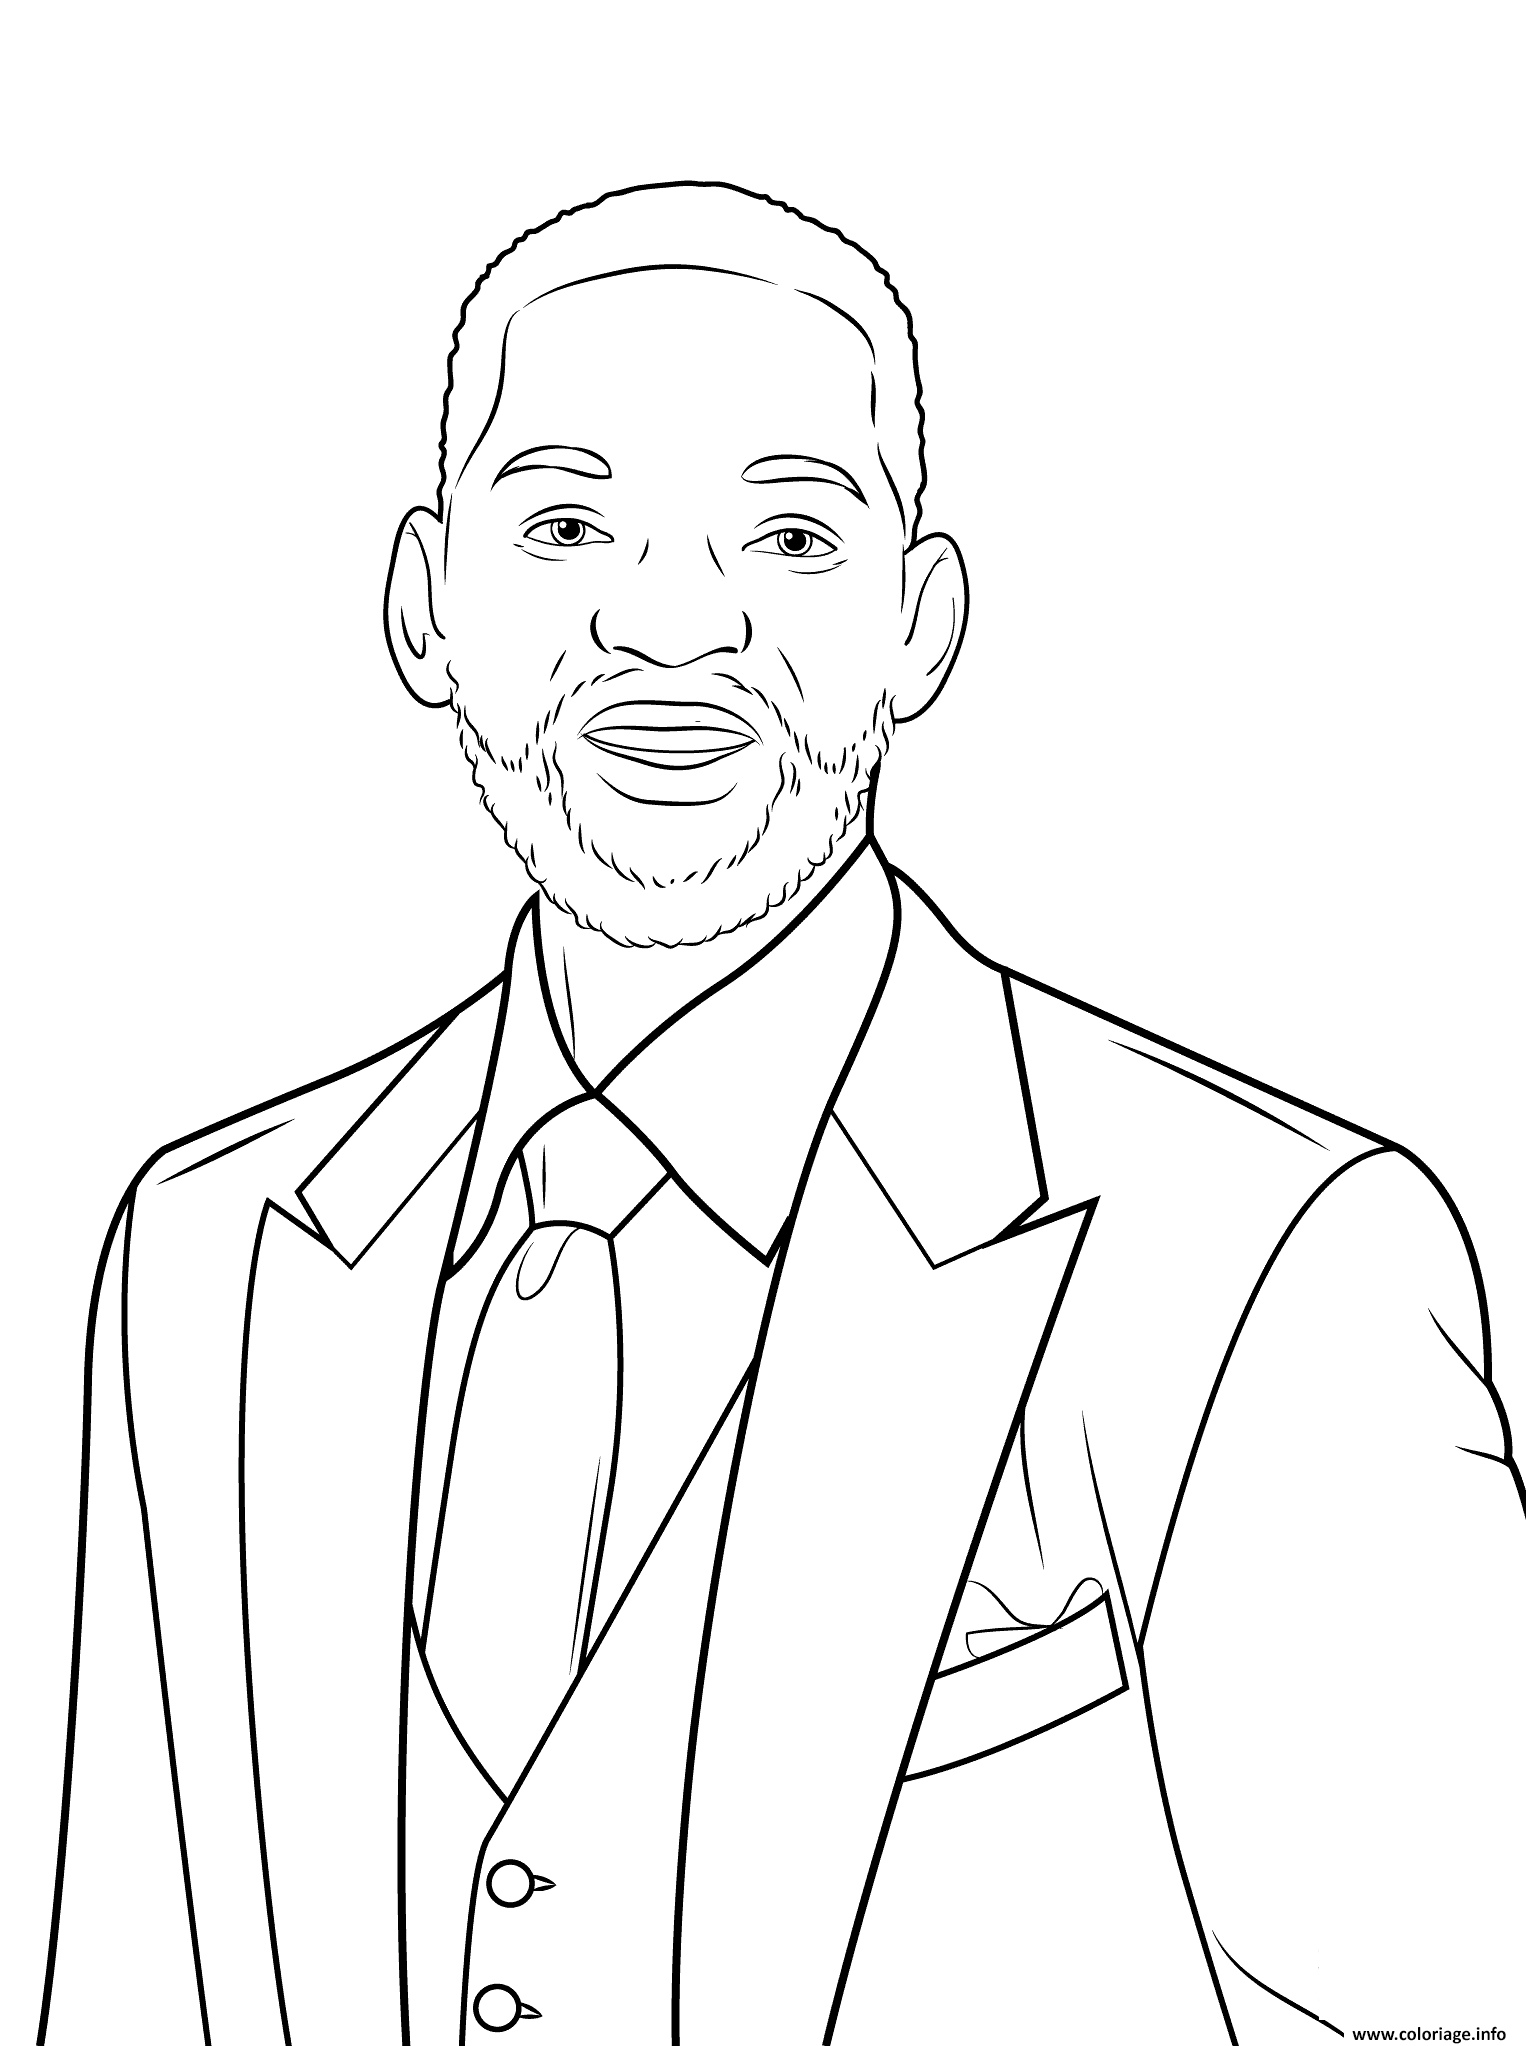 Kleurplaat Justin Bieber 2017 Coloriage Will Smith Celebrite Star Jecolorie Com